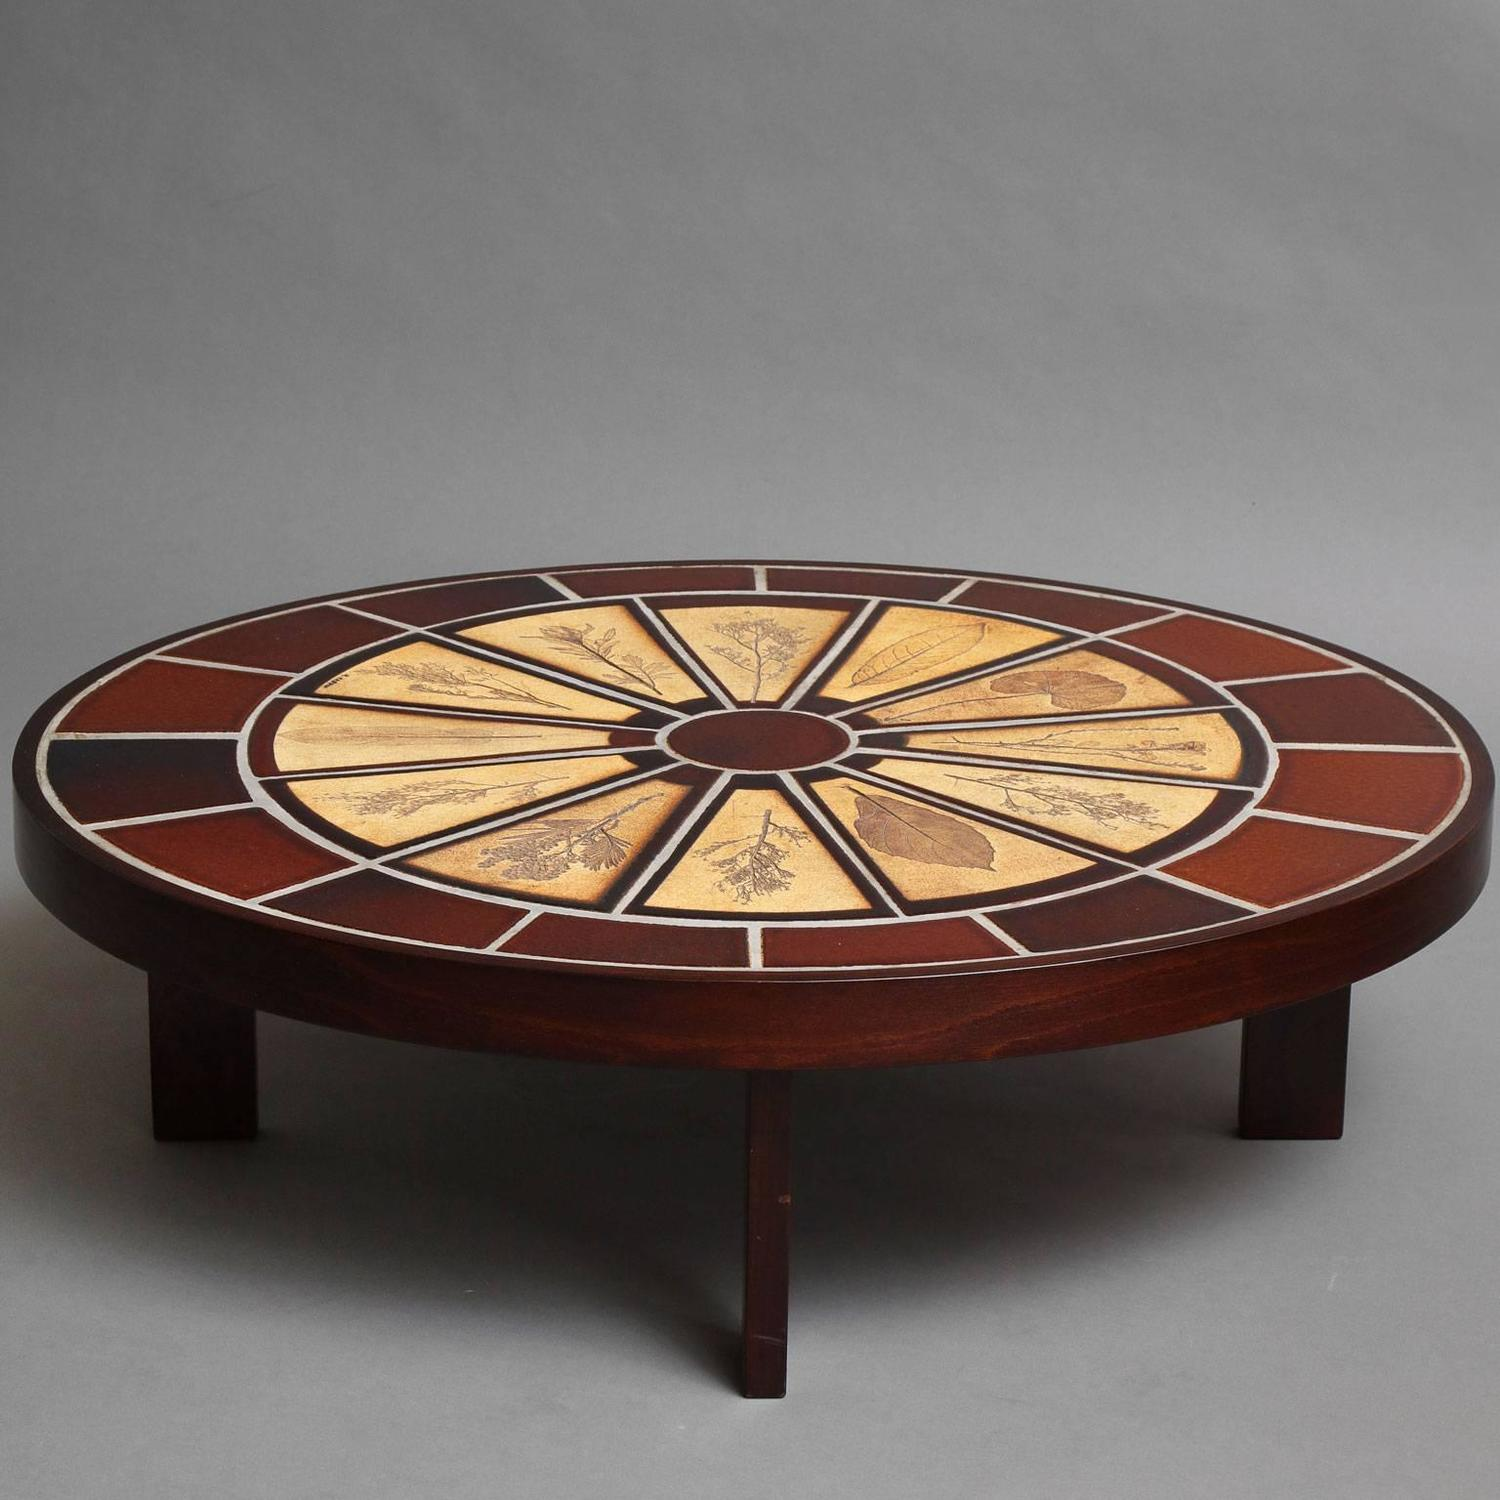 Roger Capron Coffee Table With Ceramic Tiles For Sale At 1stdibs